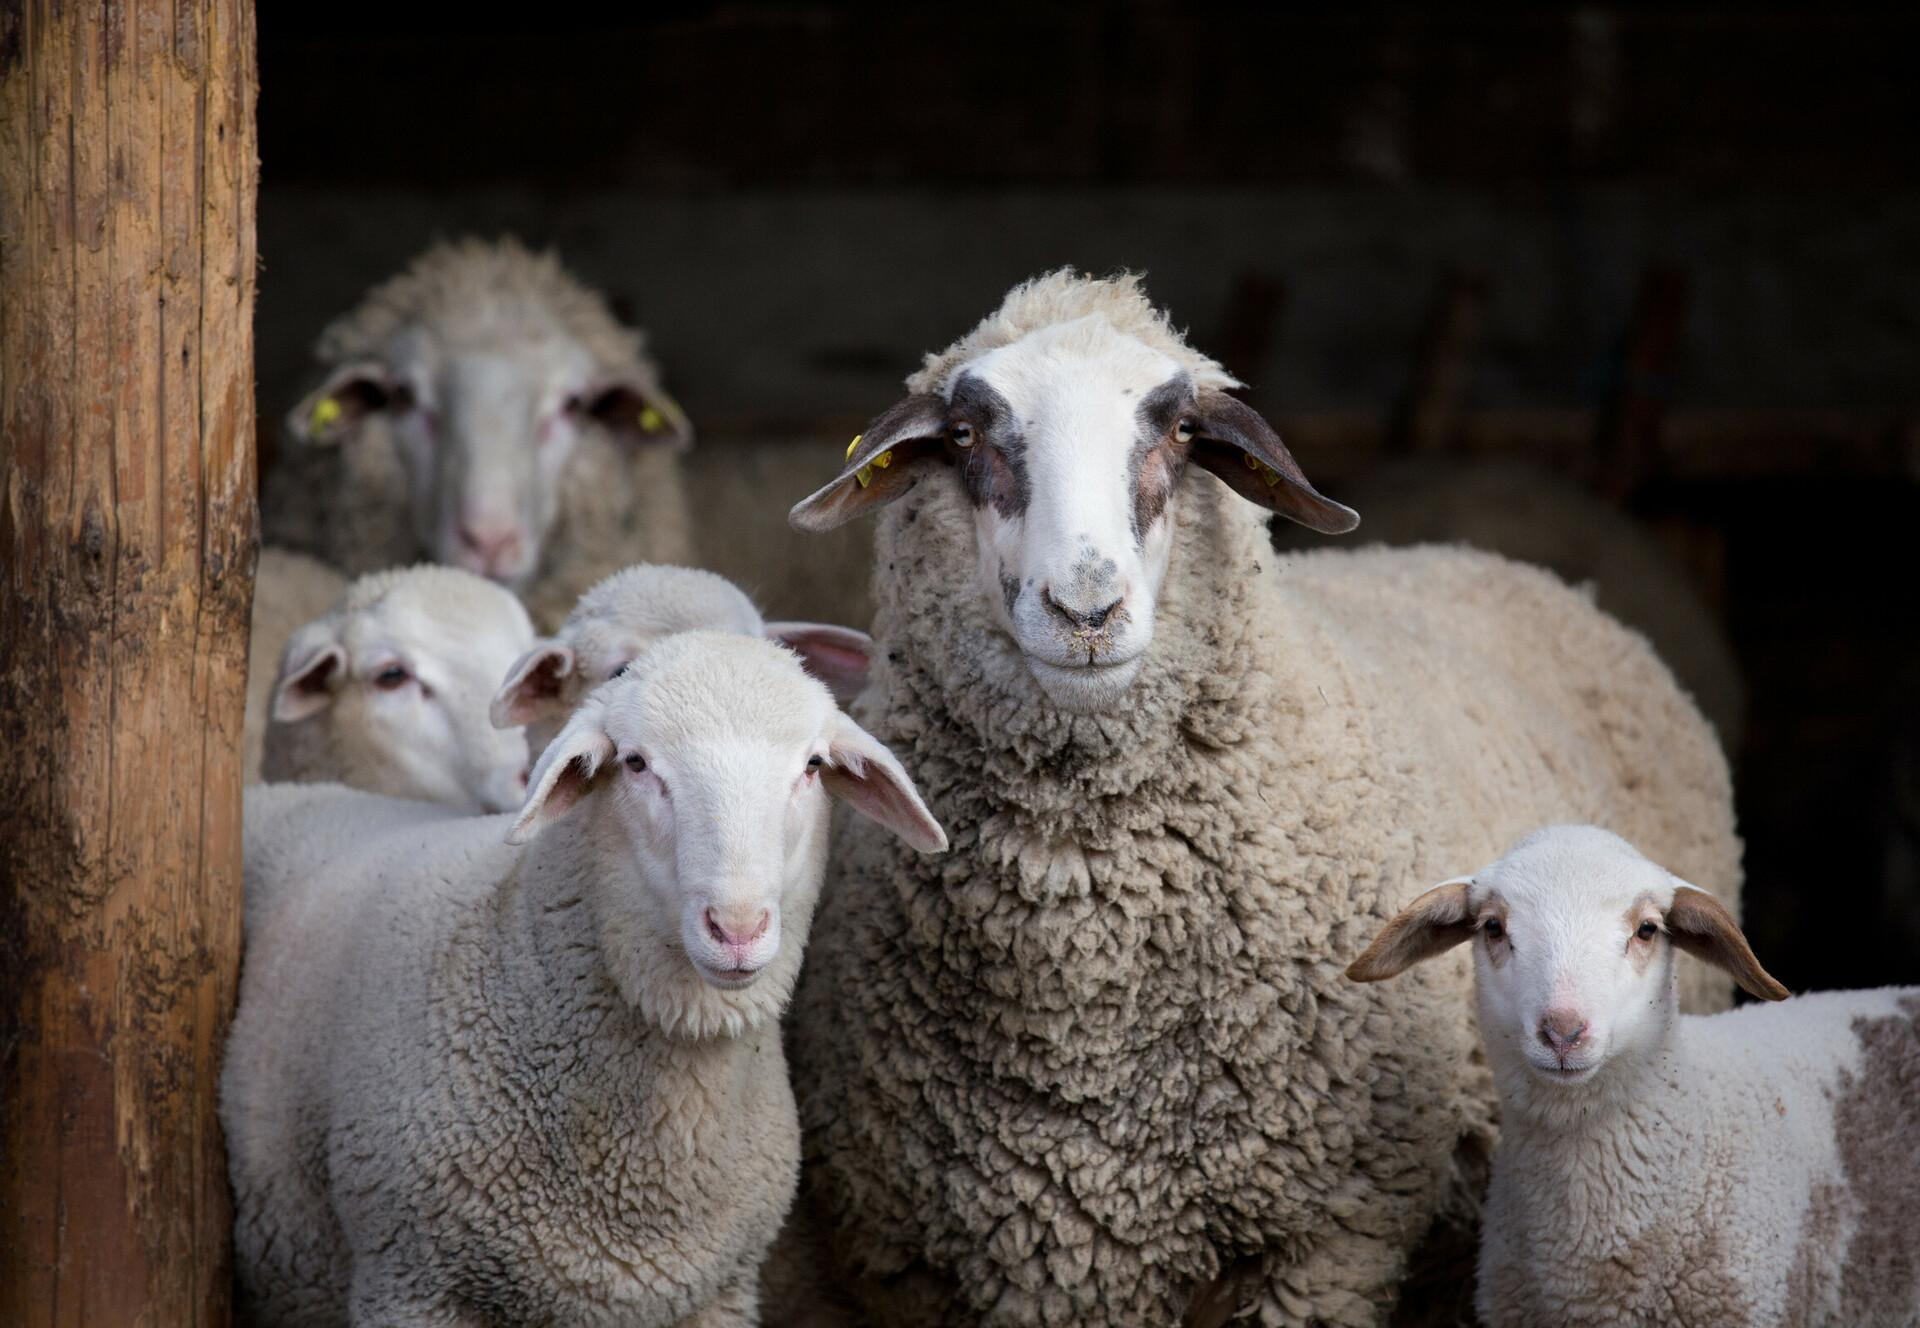 Sheep flock with lambs